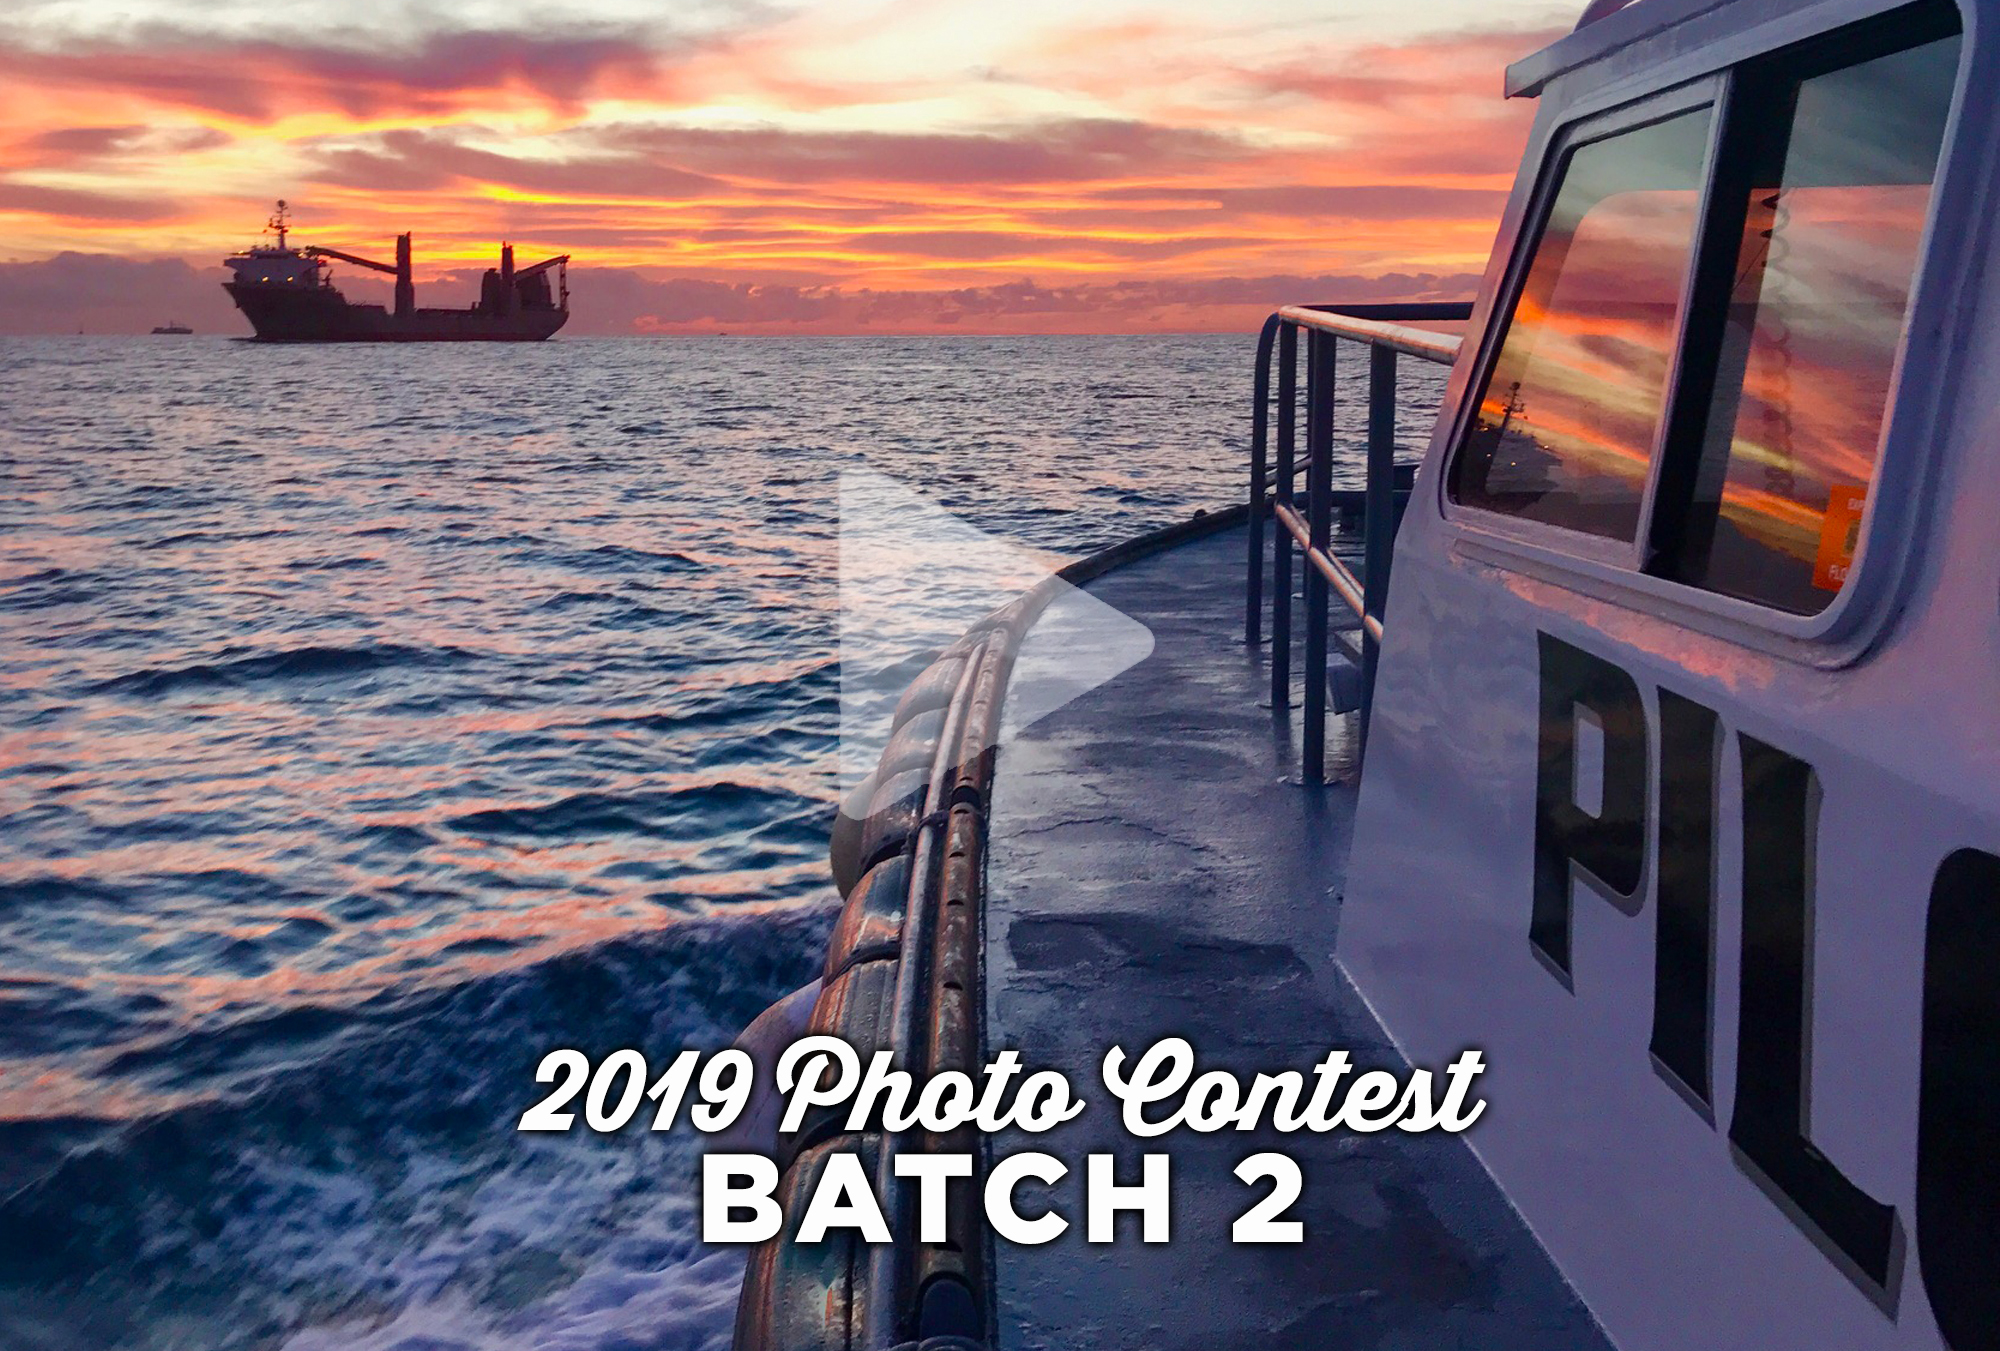 Here's the 2nd batch of amazing MOPS 2019 Photo Contest Entries! Enjoy viewing!